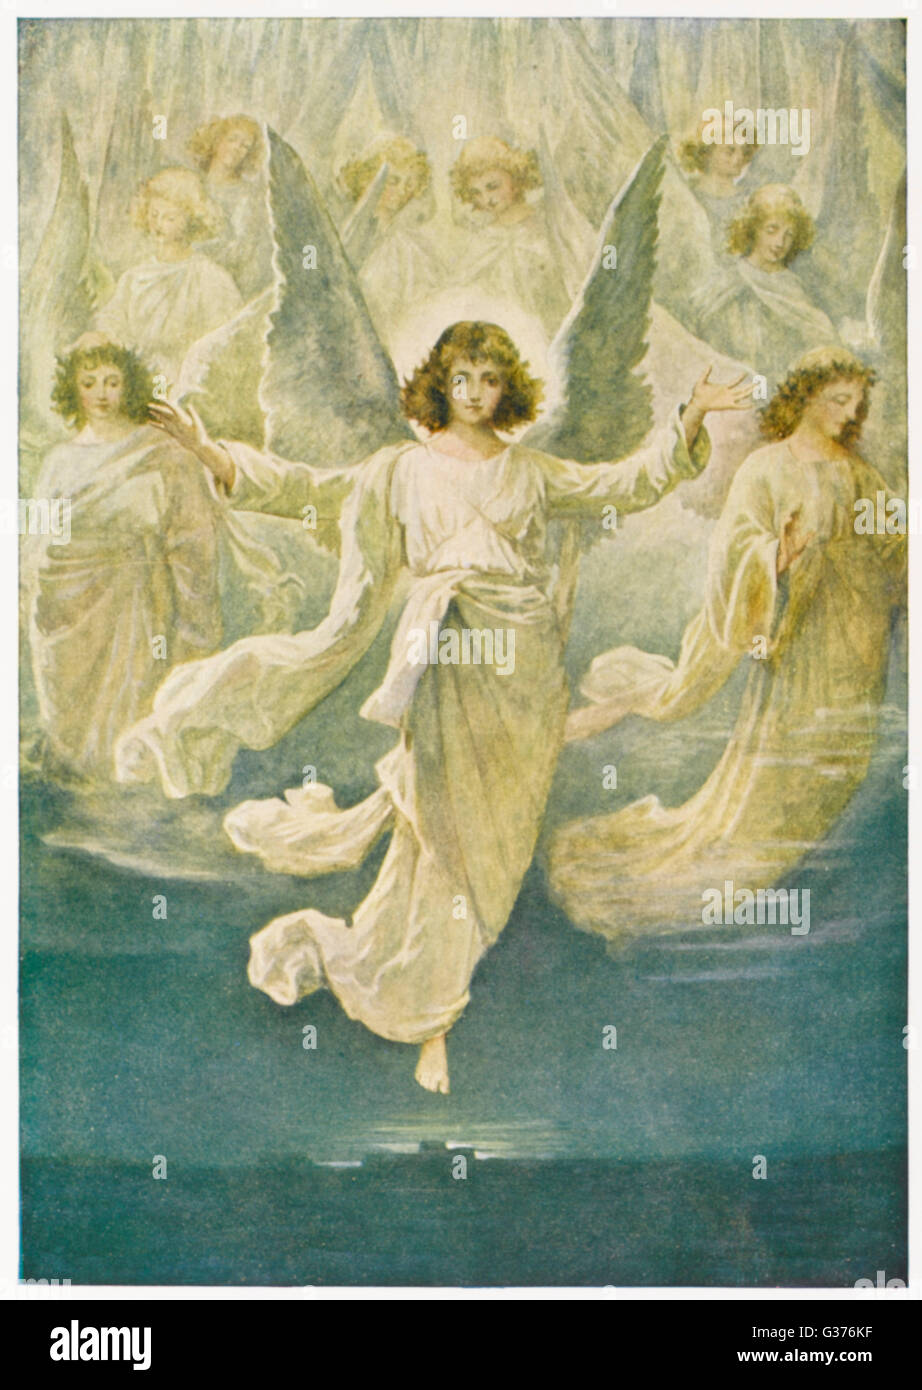 A chorus of angels announce the birth of Jesus Date BCE – Angels Announce the Birth of Jesus